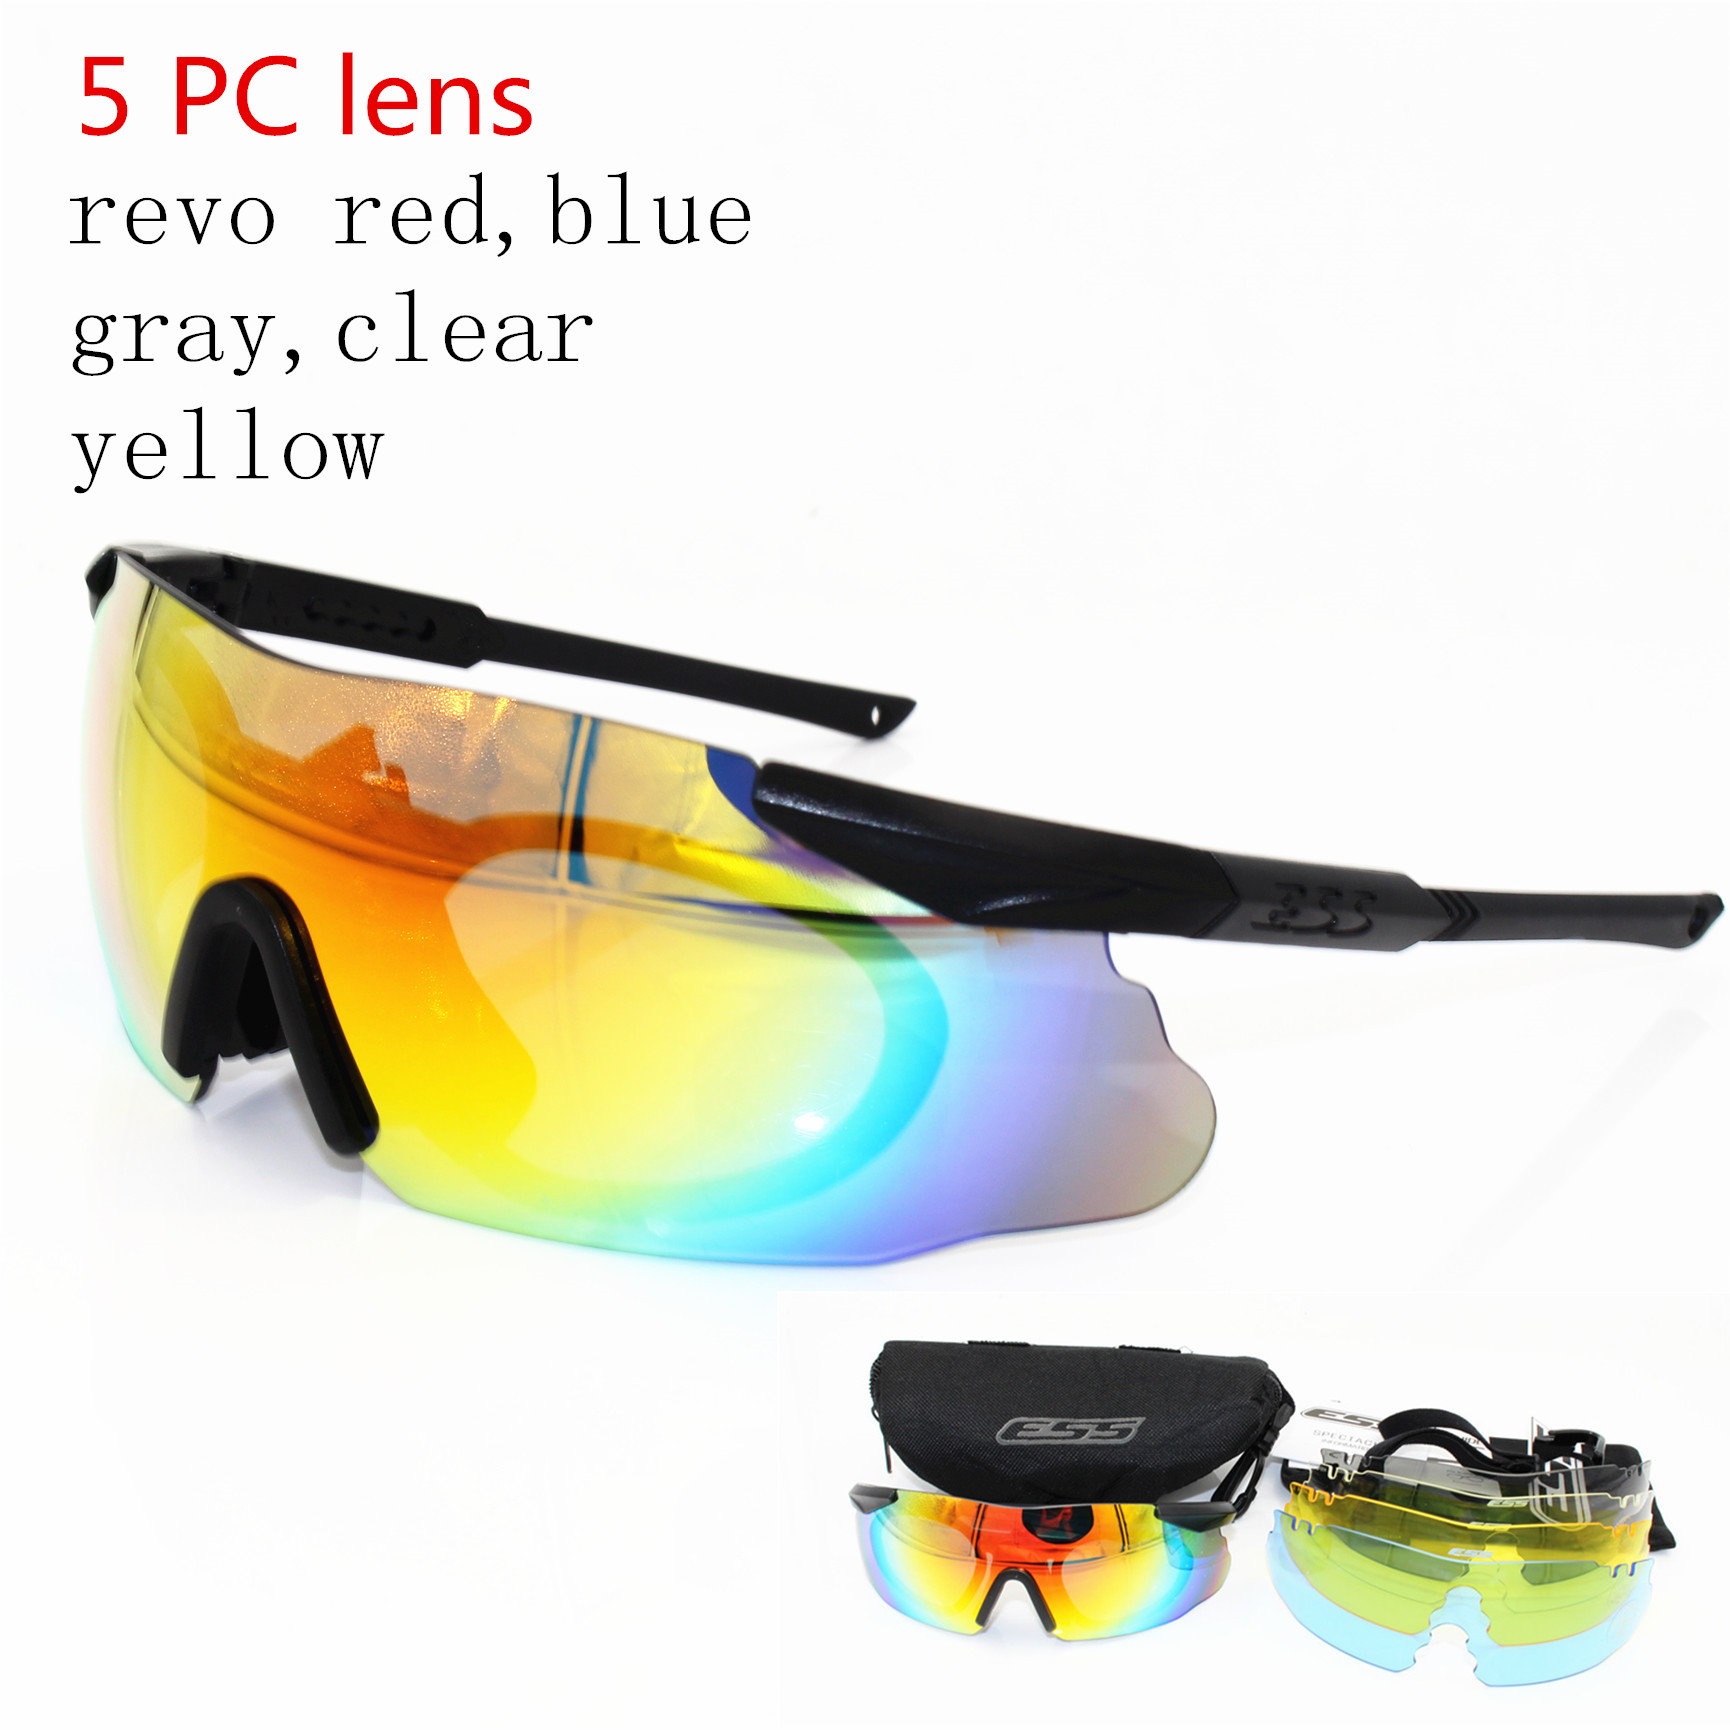 ESS 5 Lens Men Cycling Sunglasses Military ICE Safety Glasses Tactical Army Goggles TR90 Outdoor Hunting Combat Wargame Eyewear